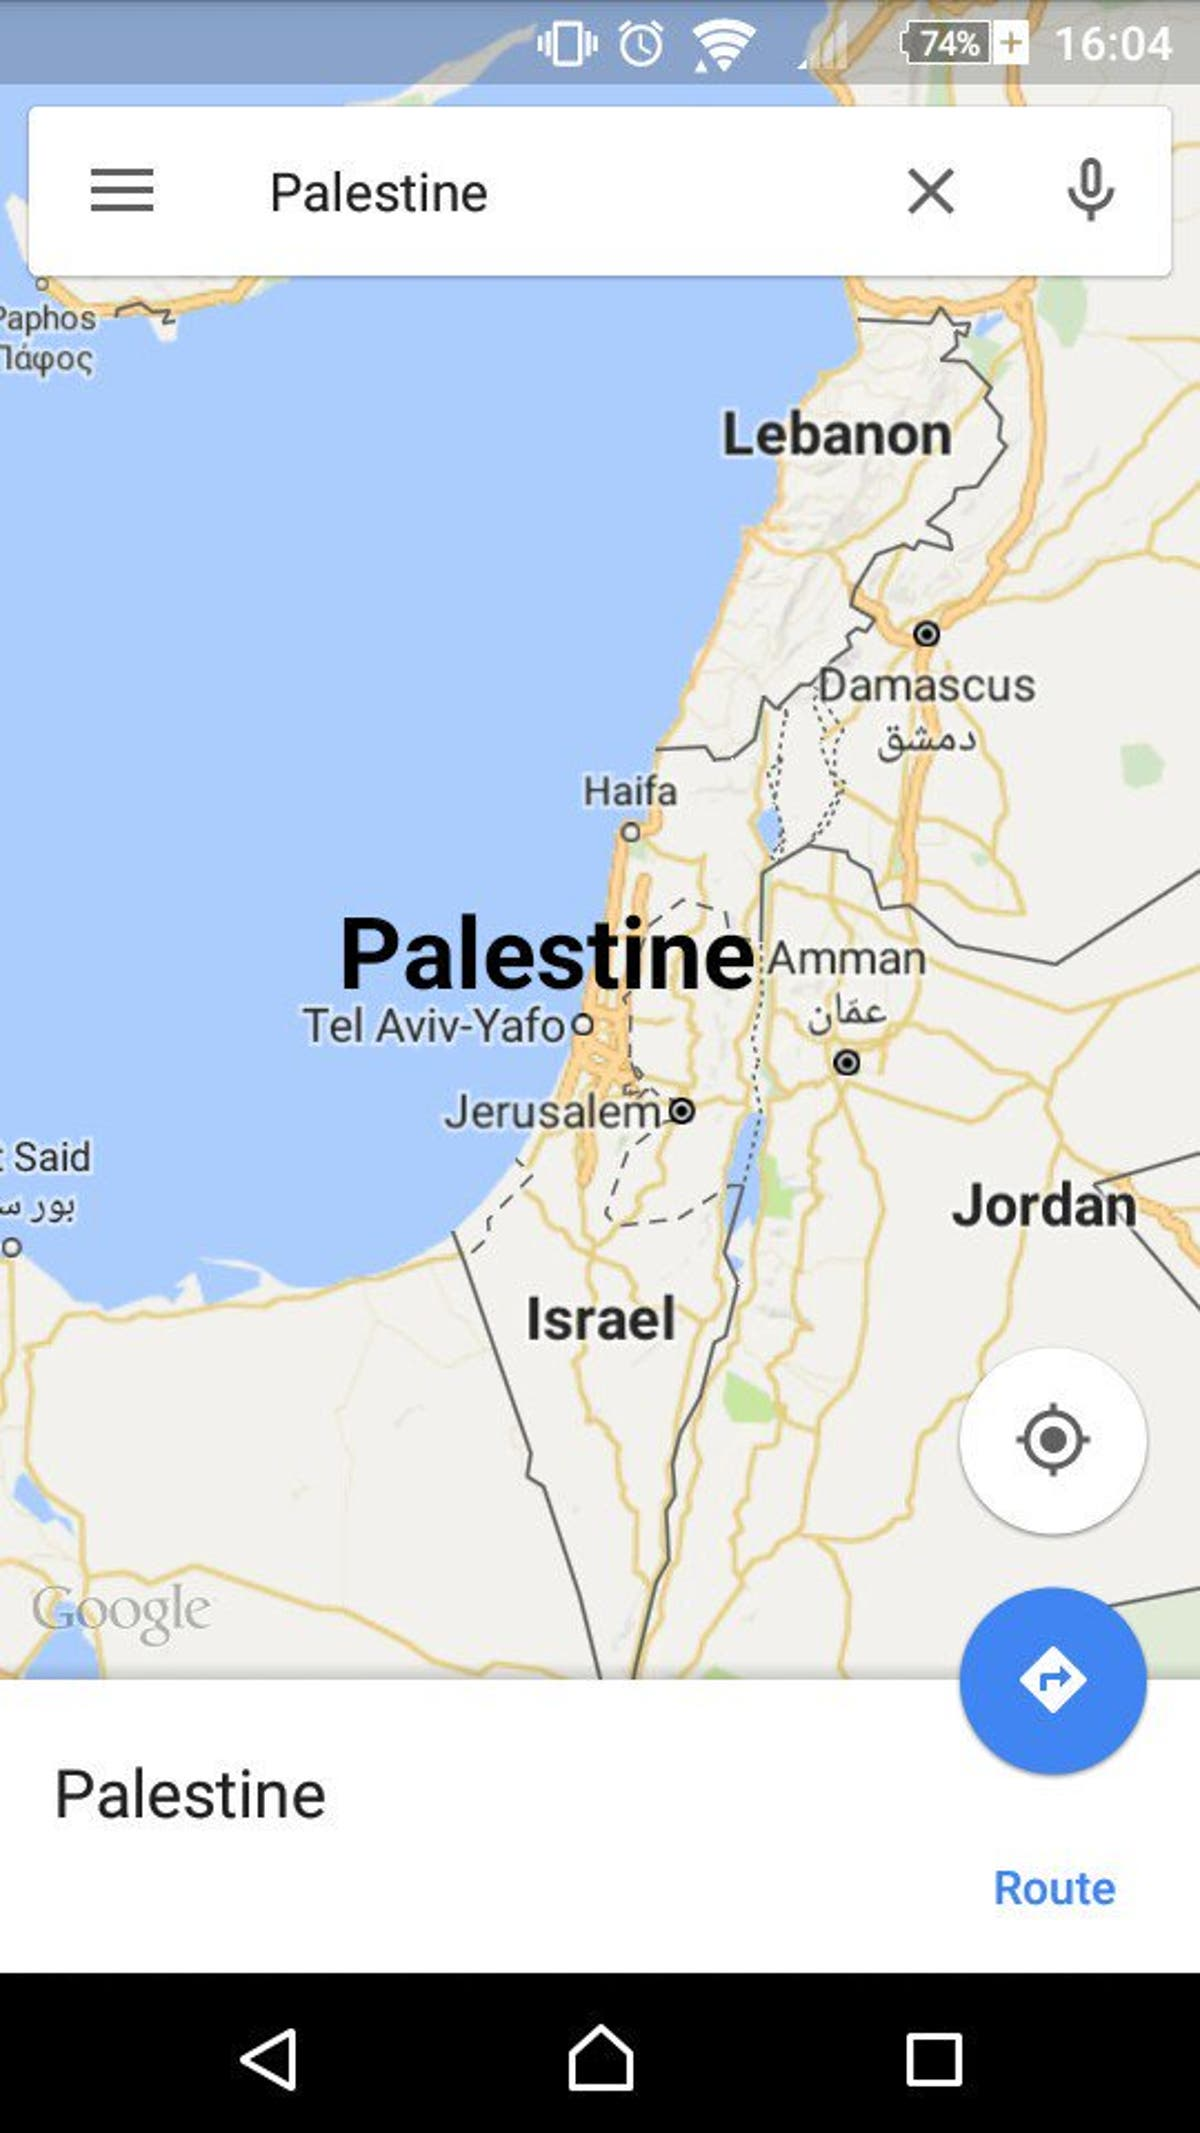 Why Does Google Maps Not Recognize Palestine Or Its Roads